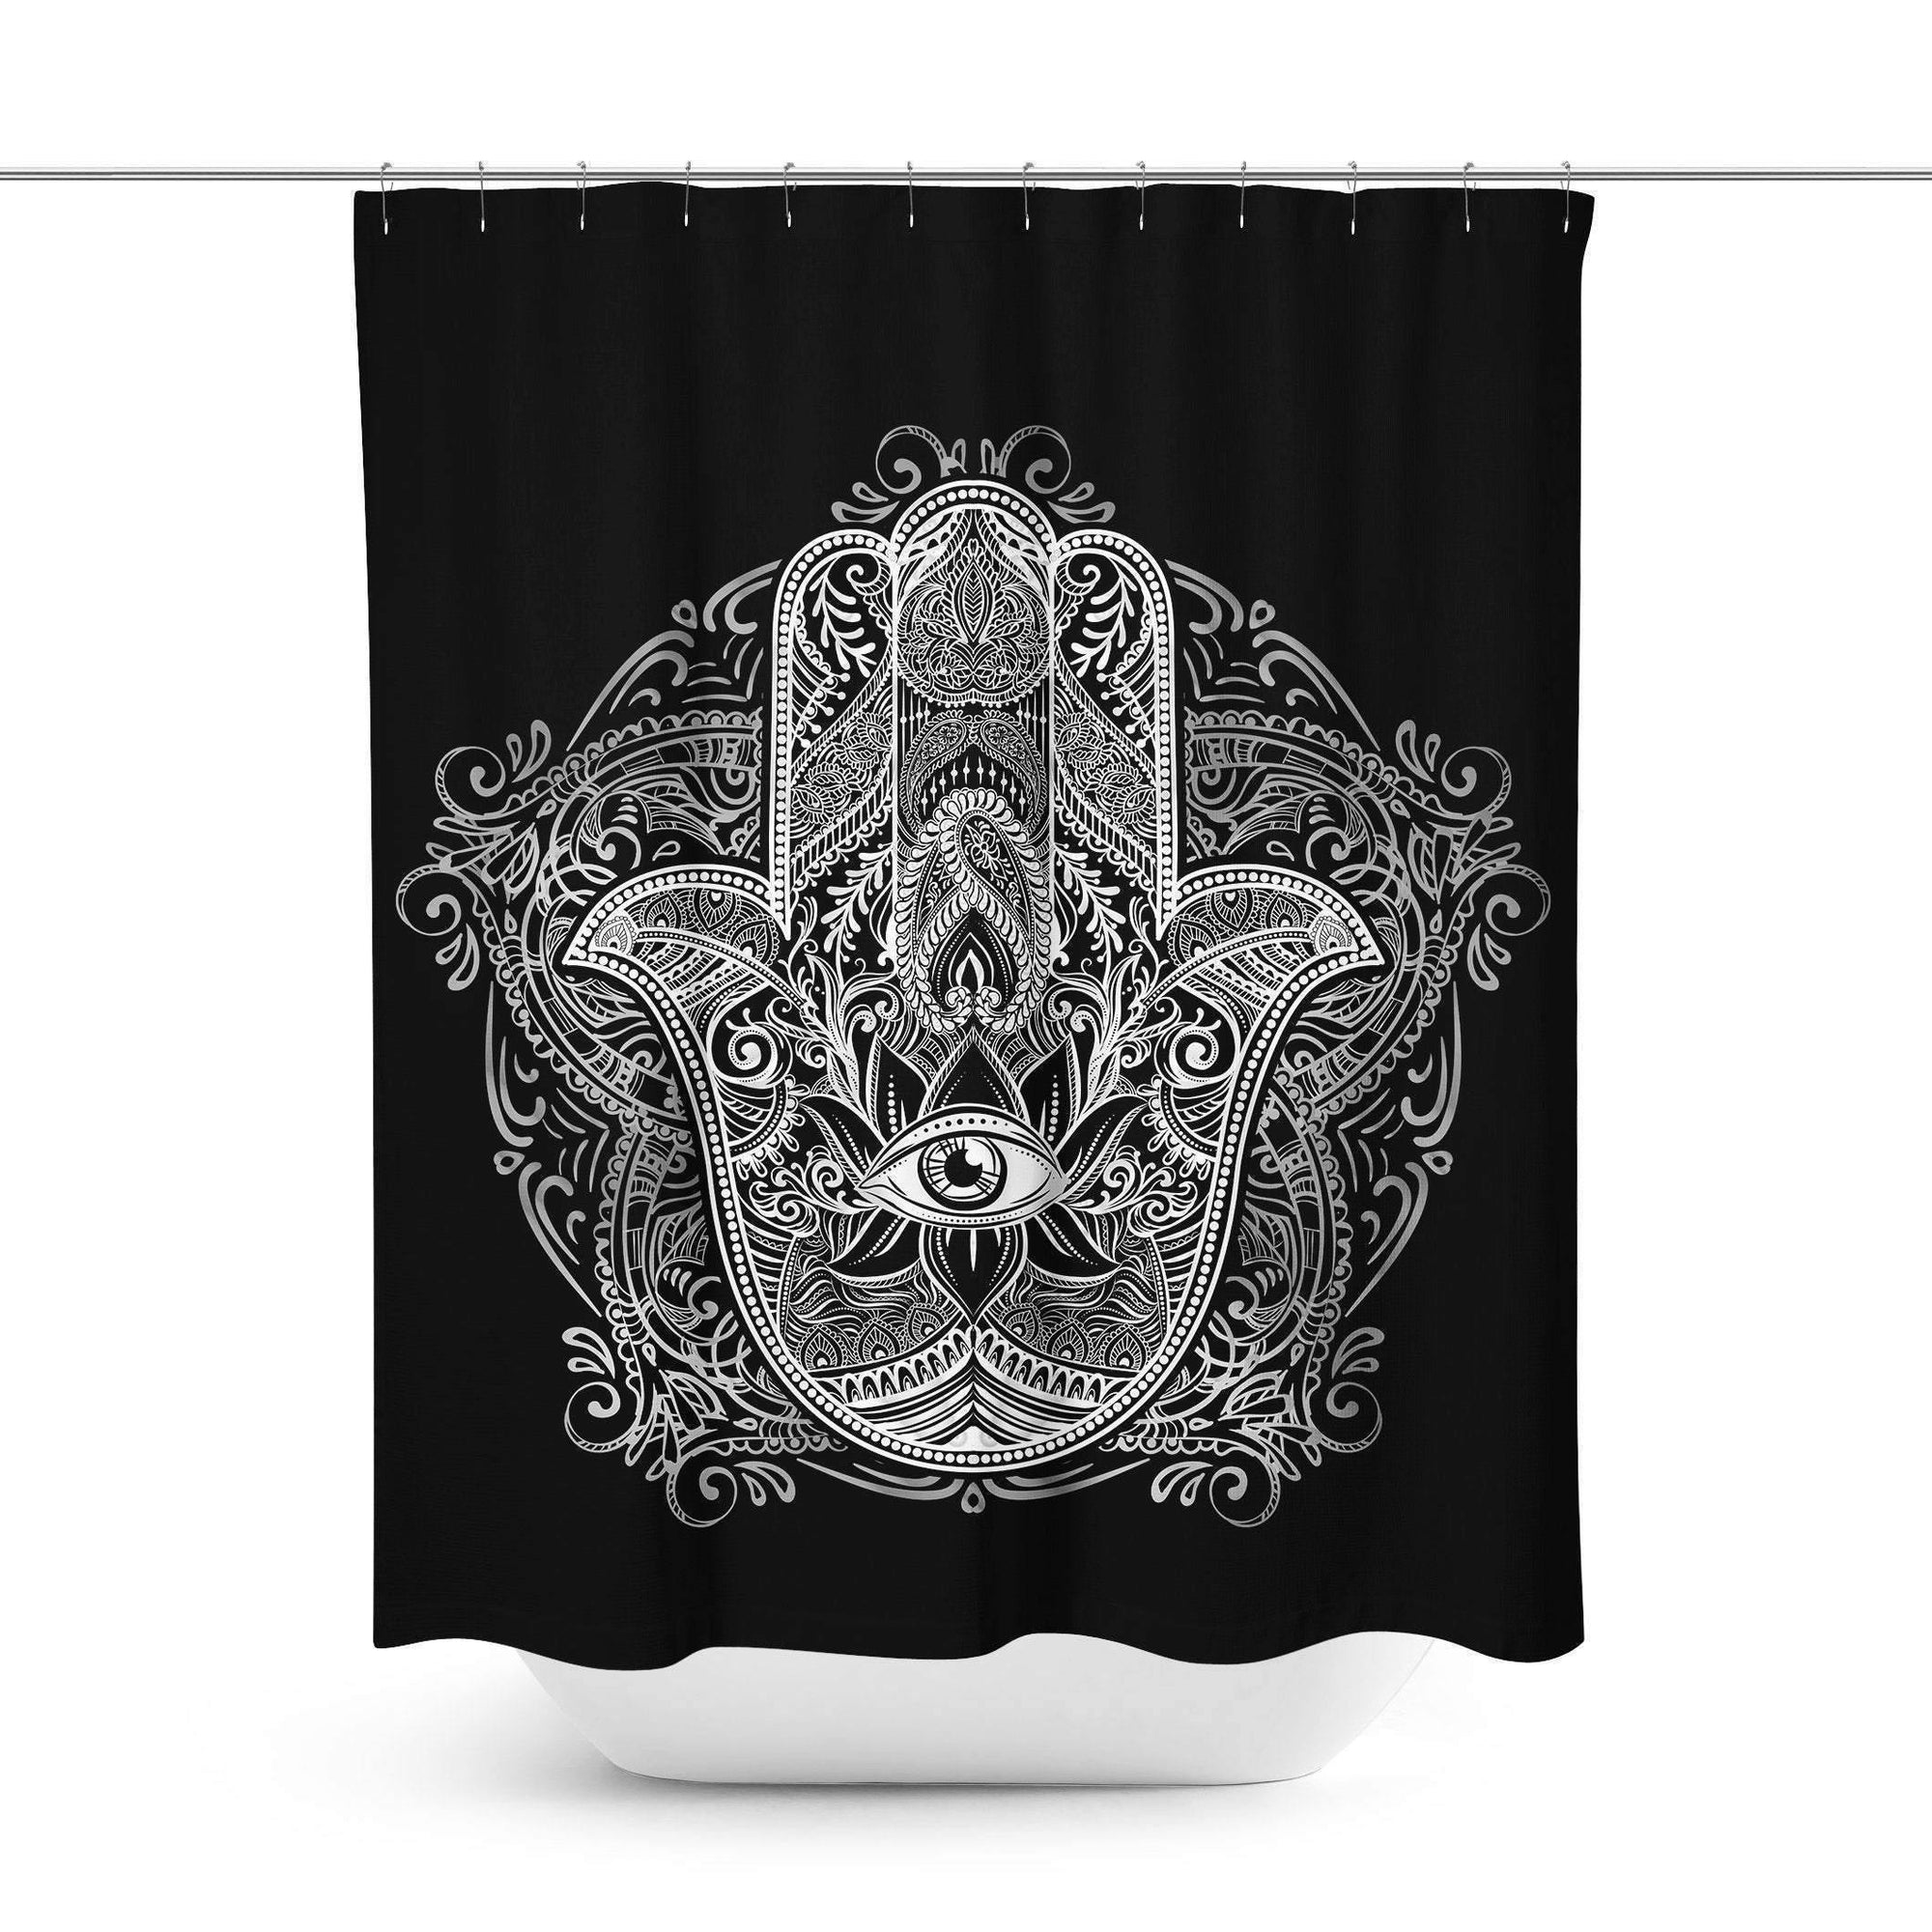 Hamsa Hand Shower Curtain - Shower Curtains - W.FRANCIS